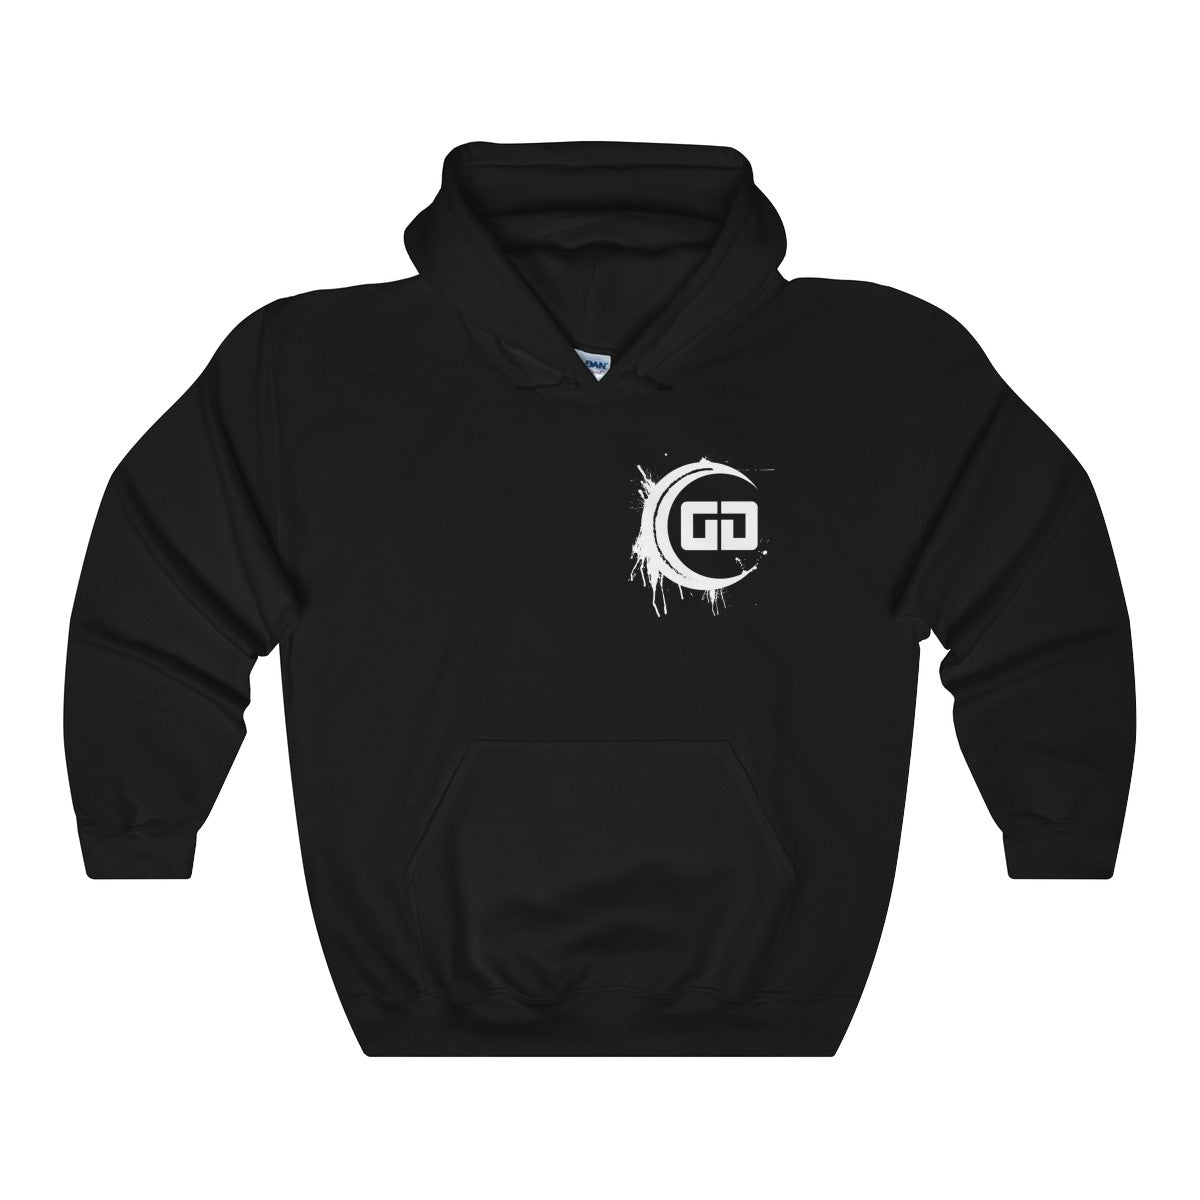 GG Splash Hooded Sweatshirt